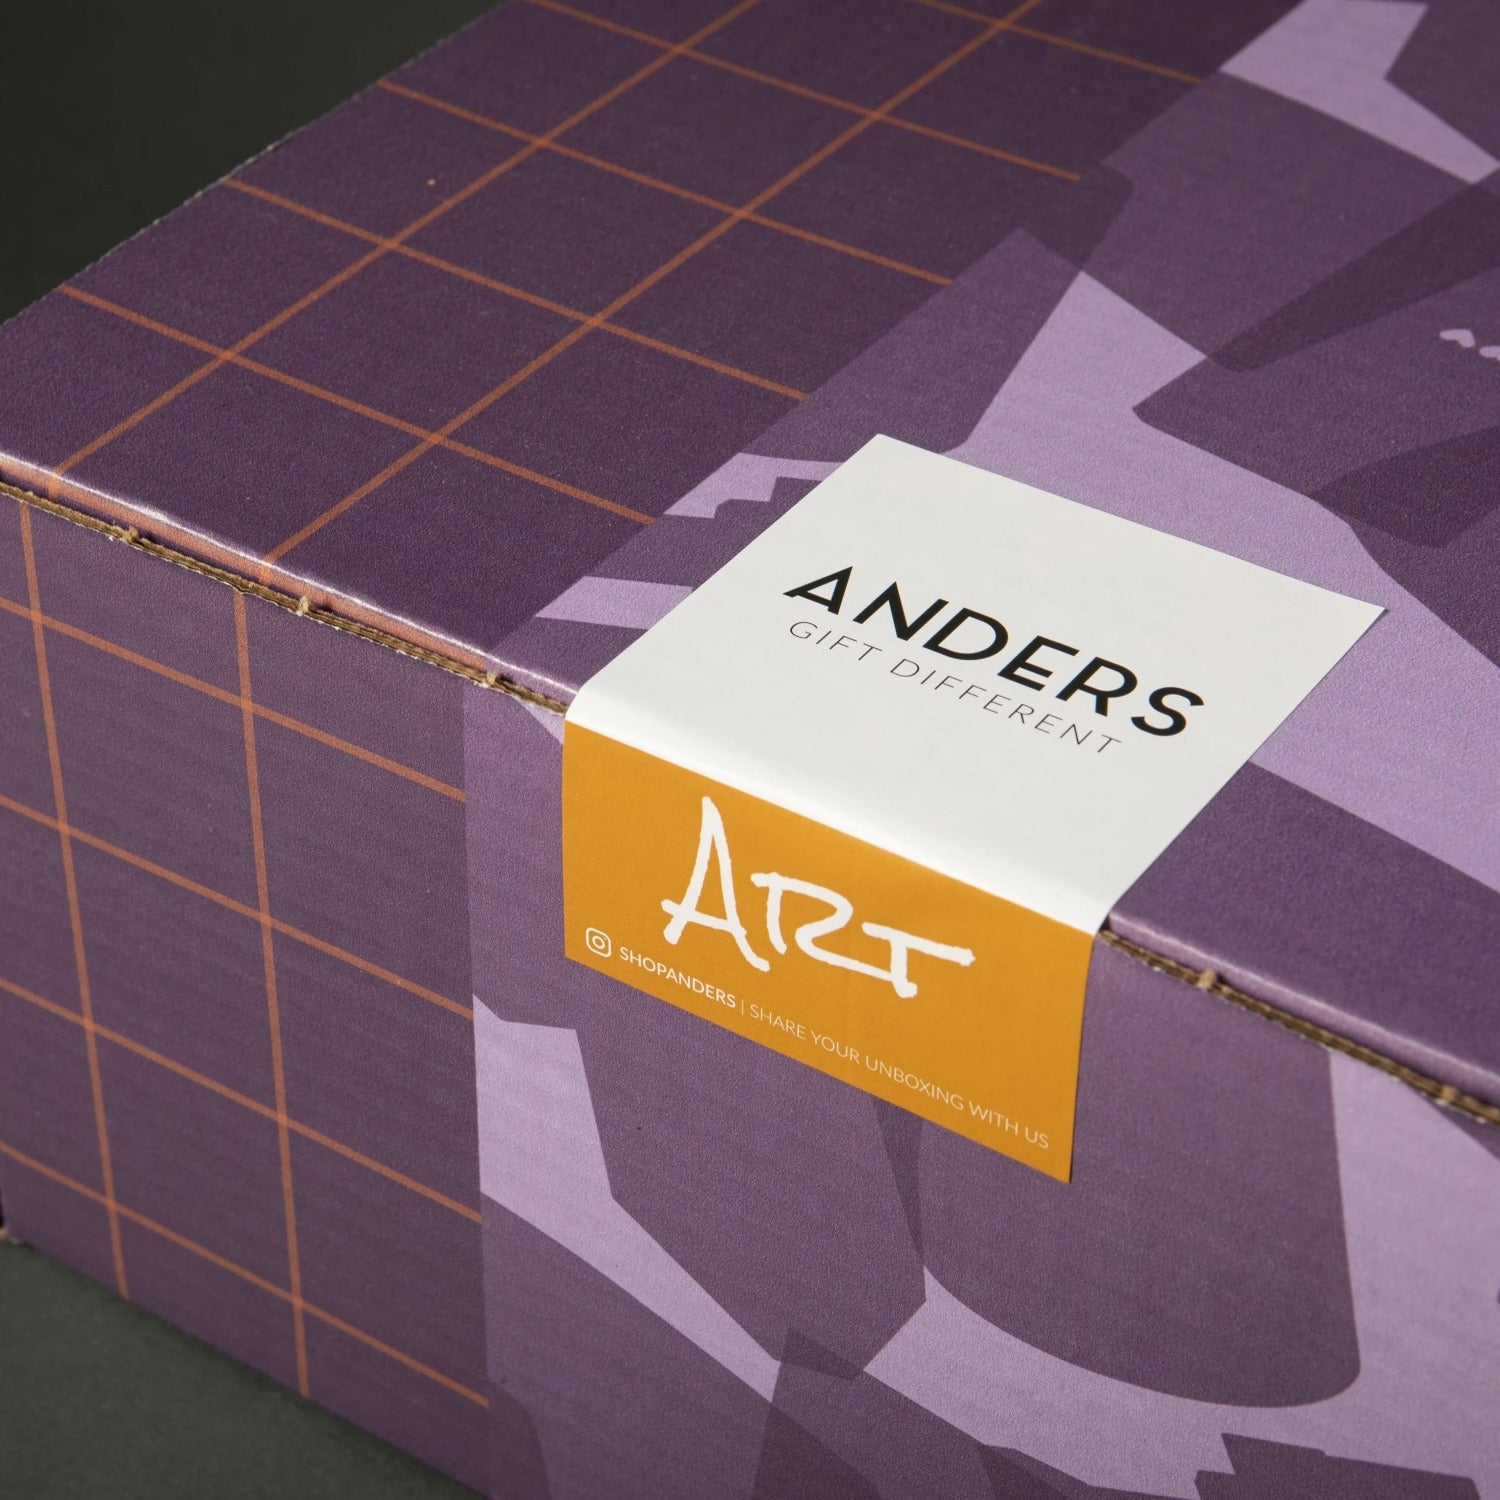 Anders Gift Box Art Closed